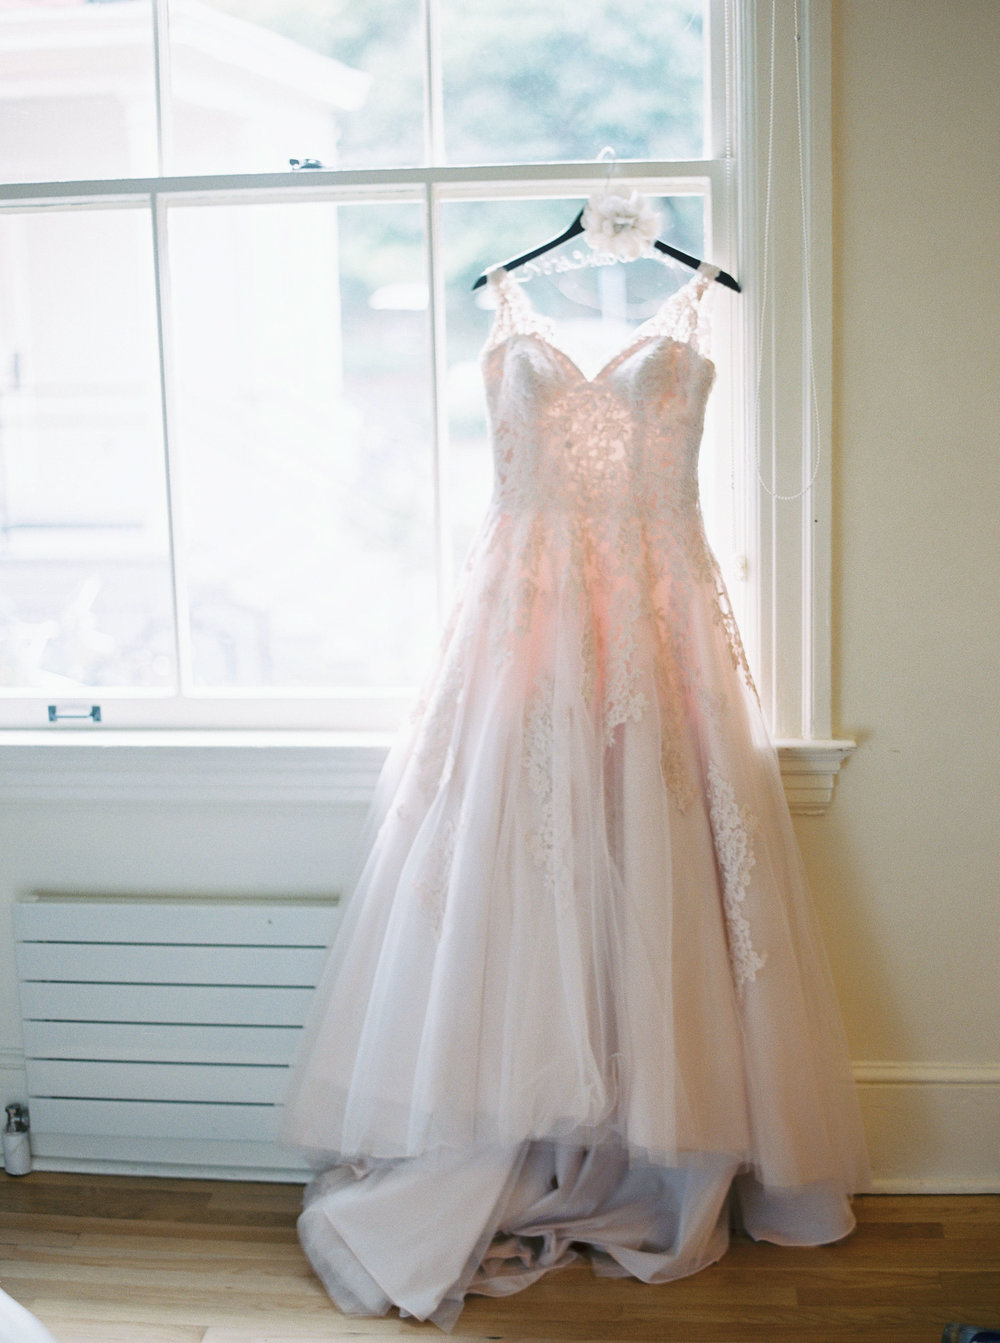 blush-inspired-wedding-at-the-presidio-in-san-francisco.jpg